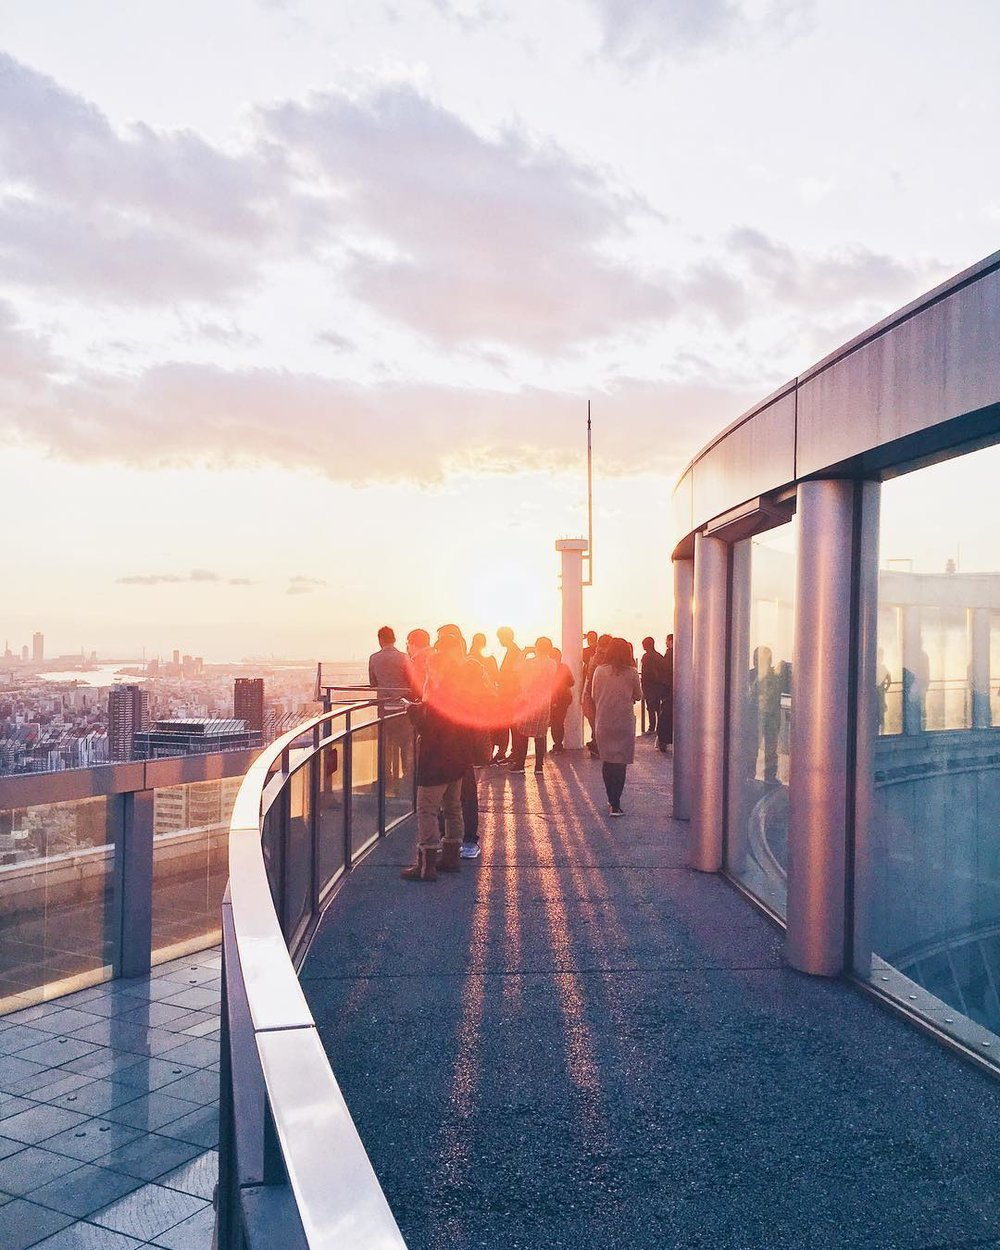 The Umeda Sky Building At Sunset -